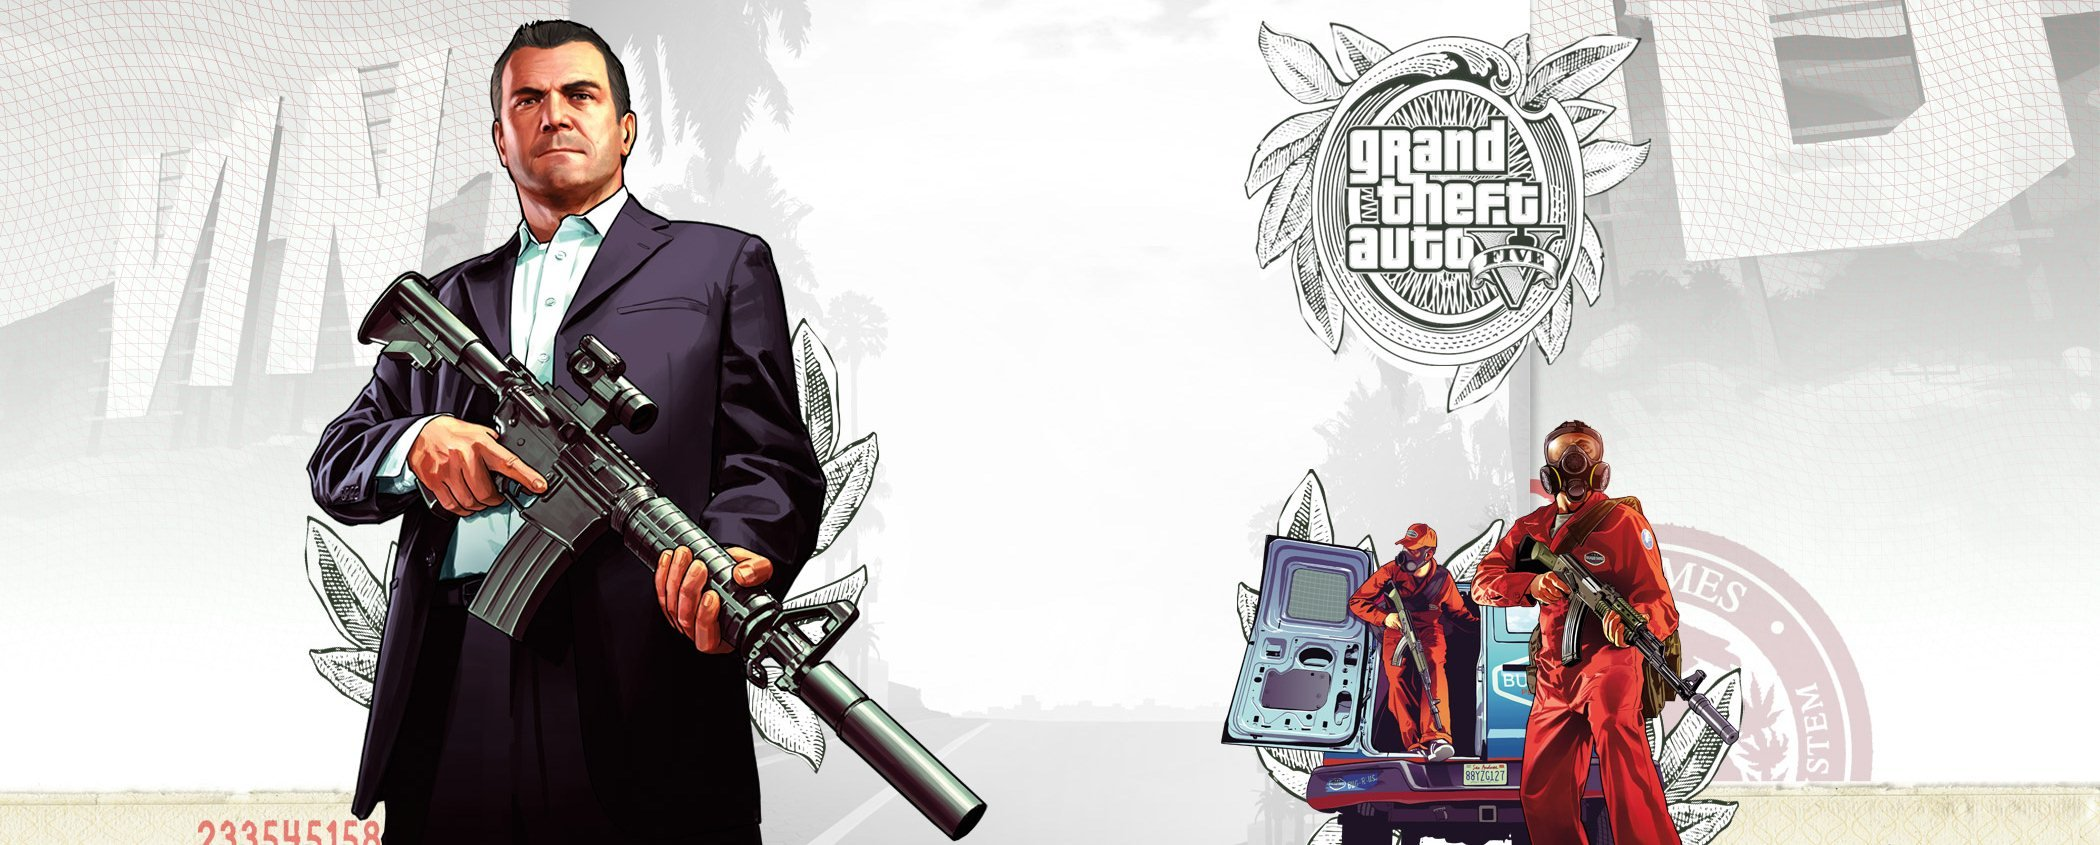 GTA 5 background art from Gameinformer